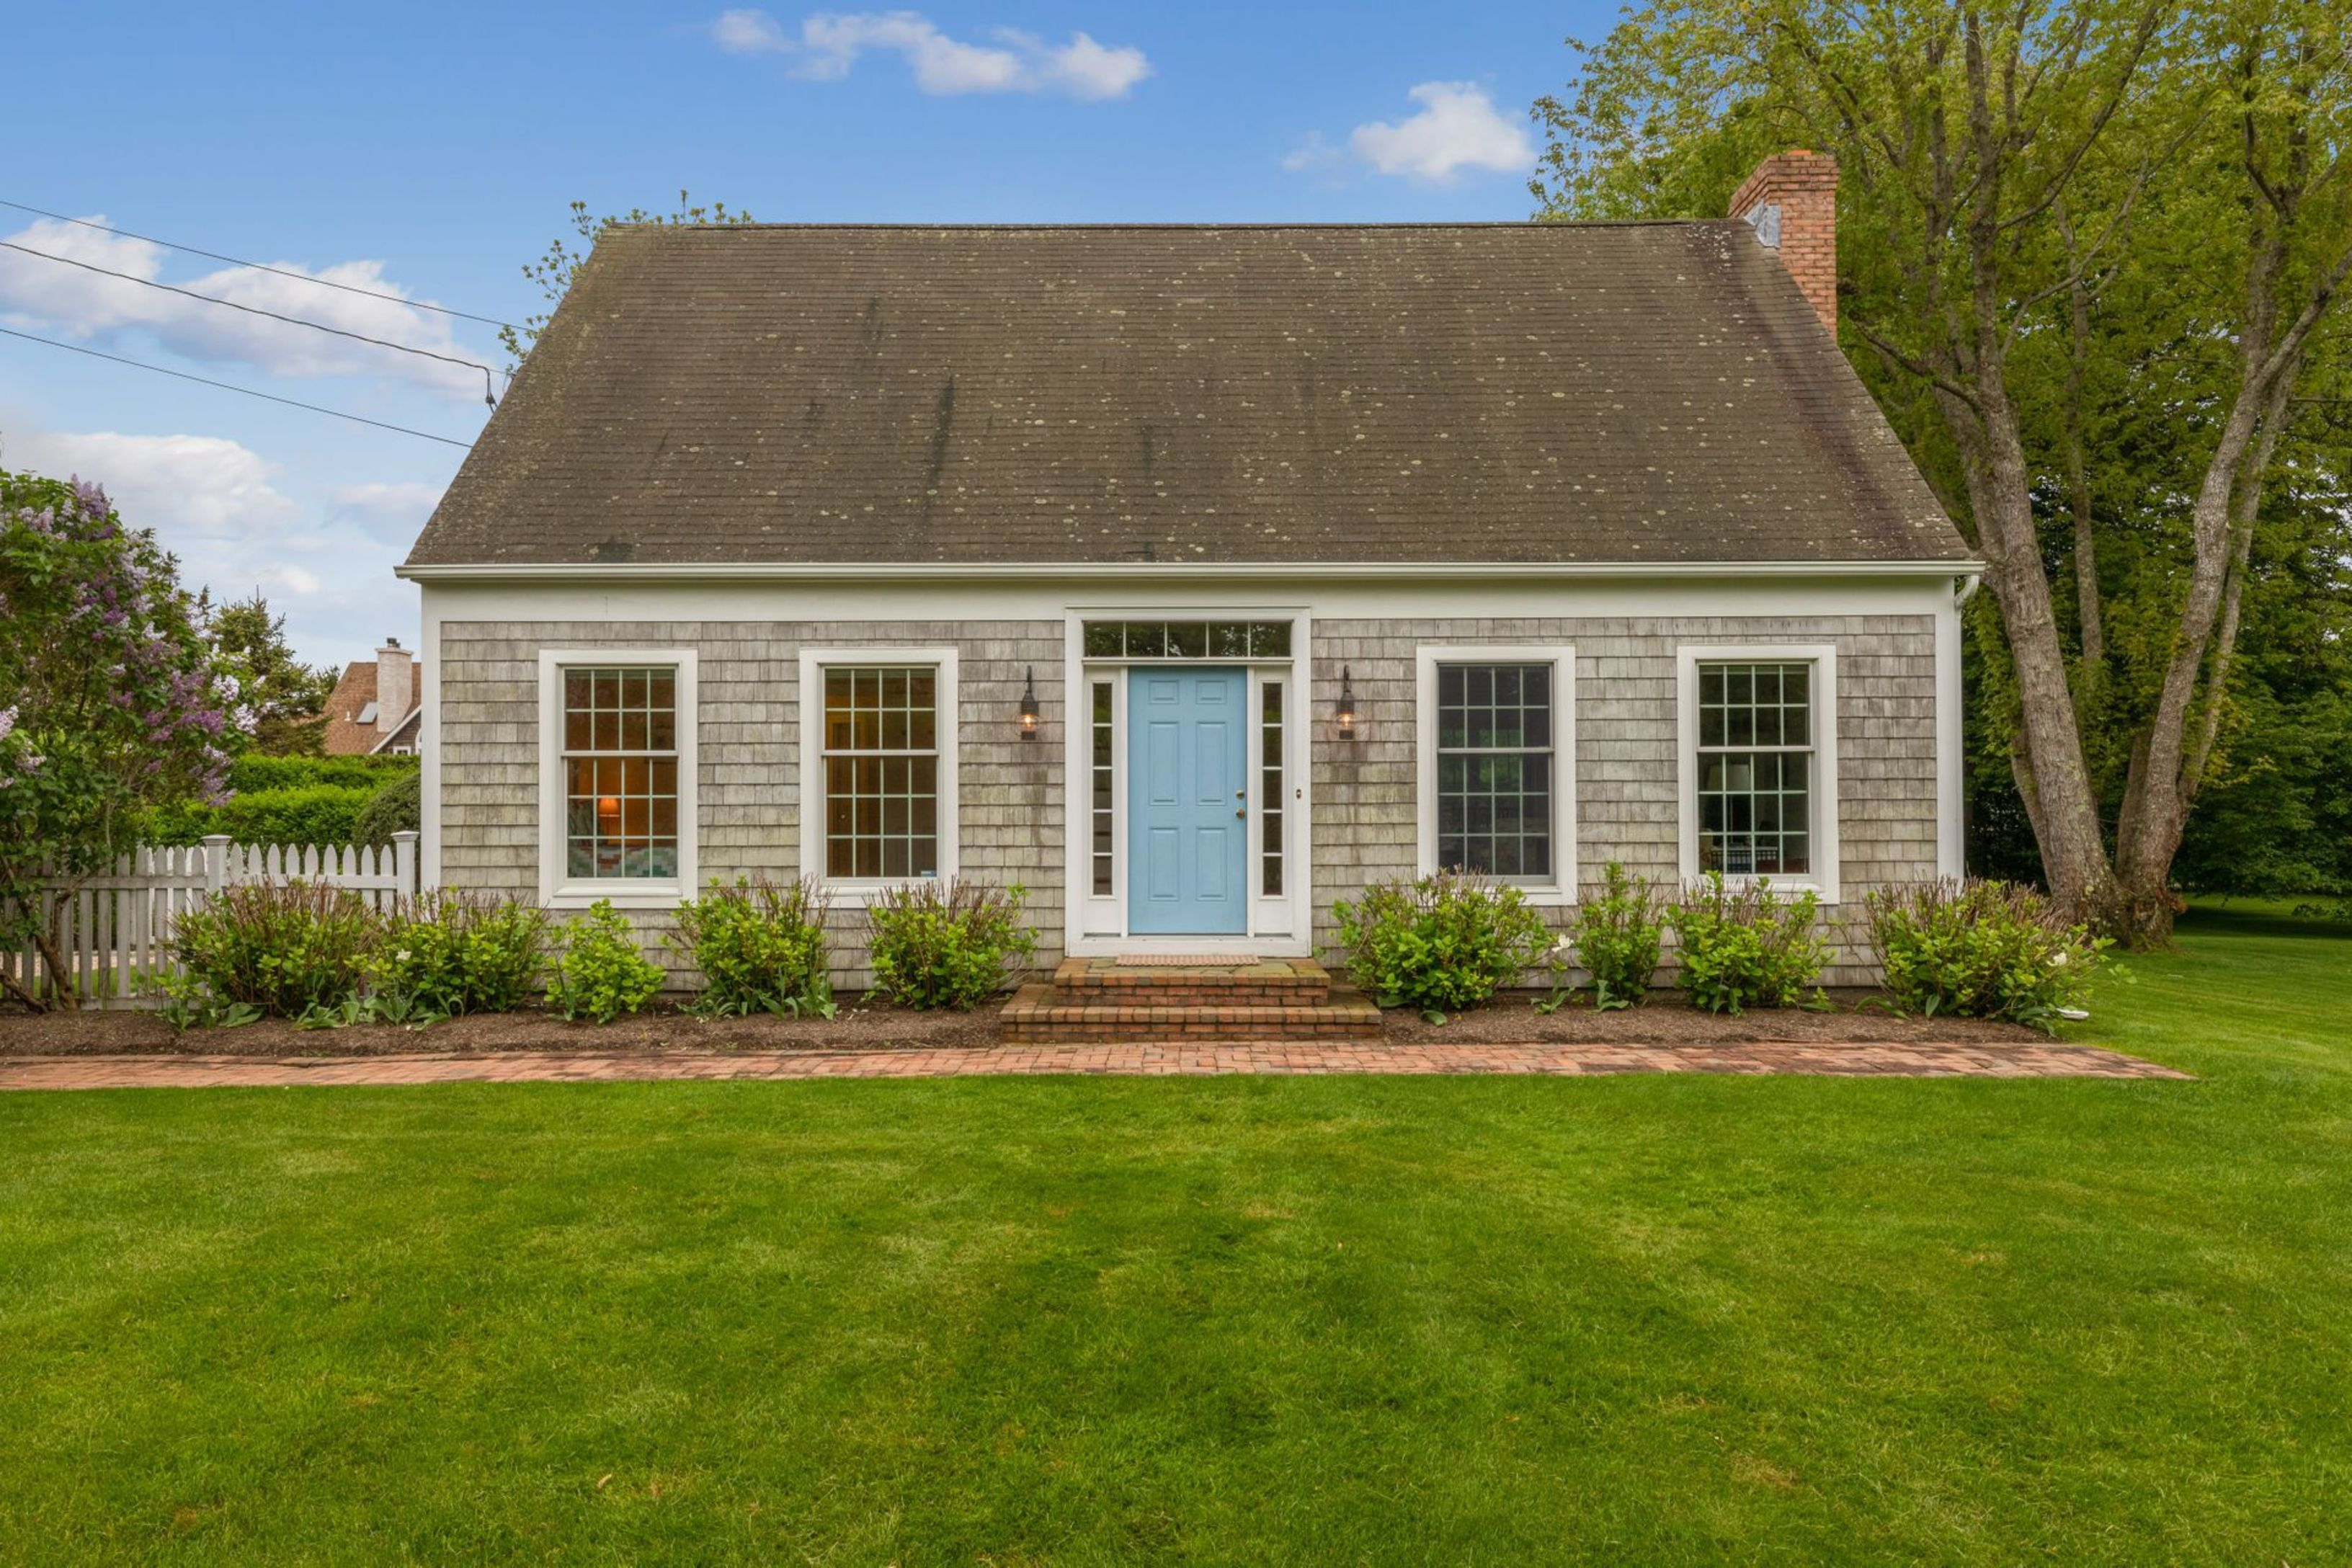 11 Sawasett Ave - Bridgehampton North, New York